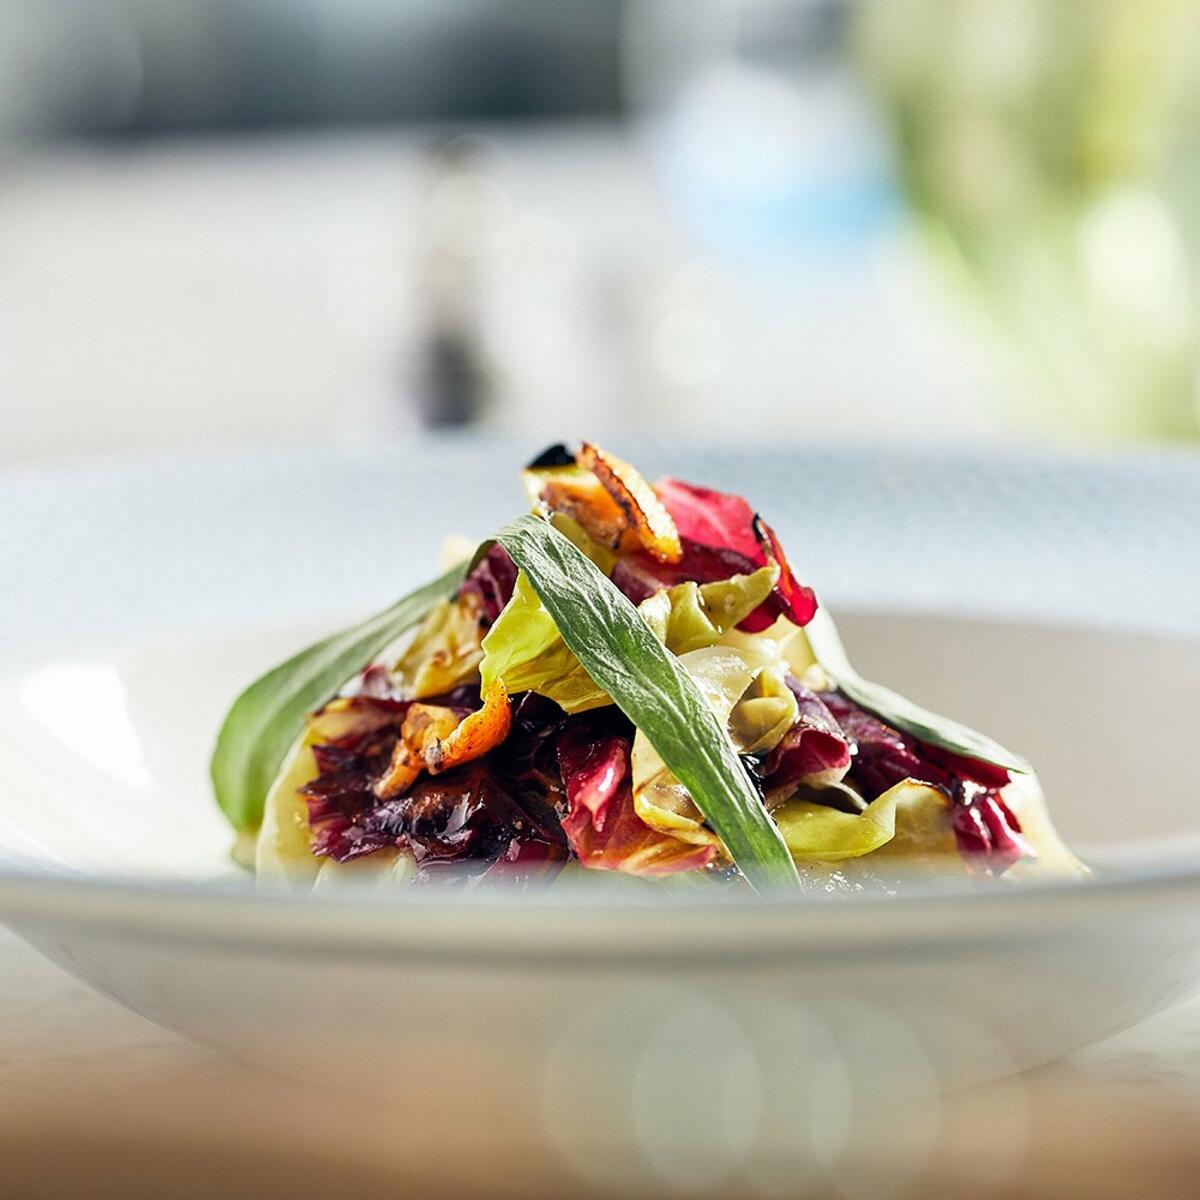 Whether omnivore, vegetarian, or vegan there is a dish on our menu for you